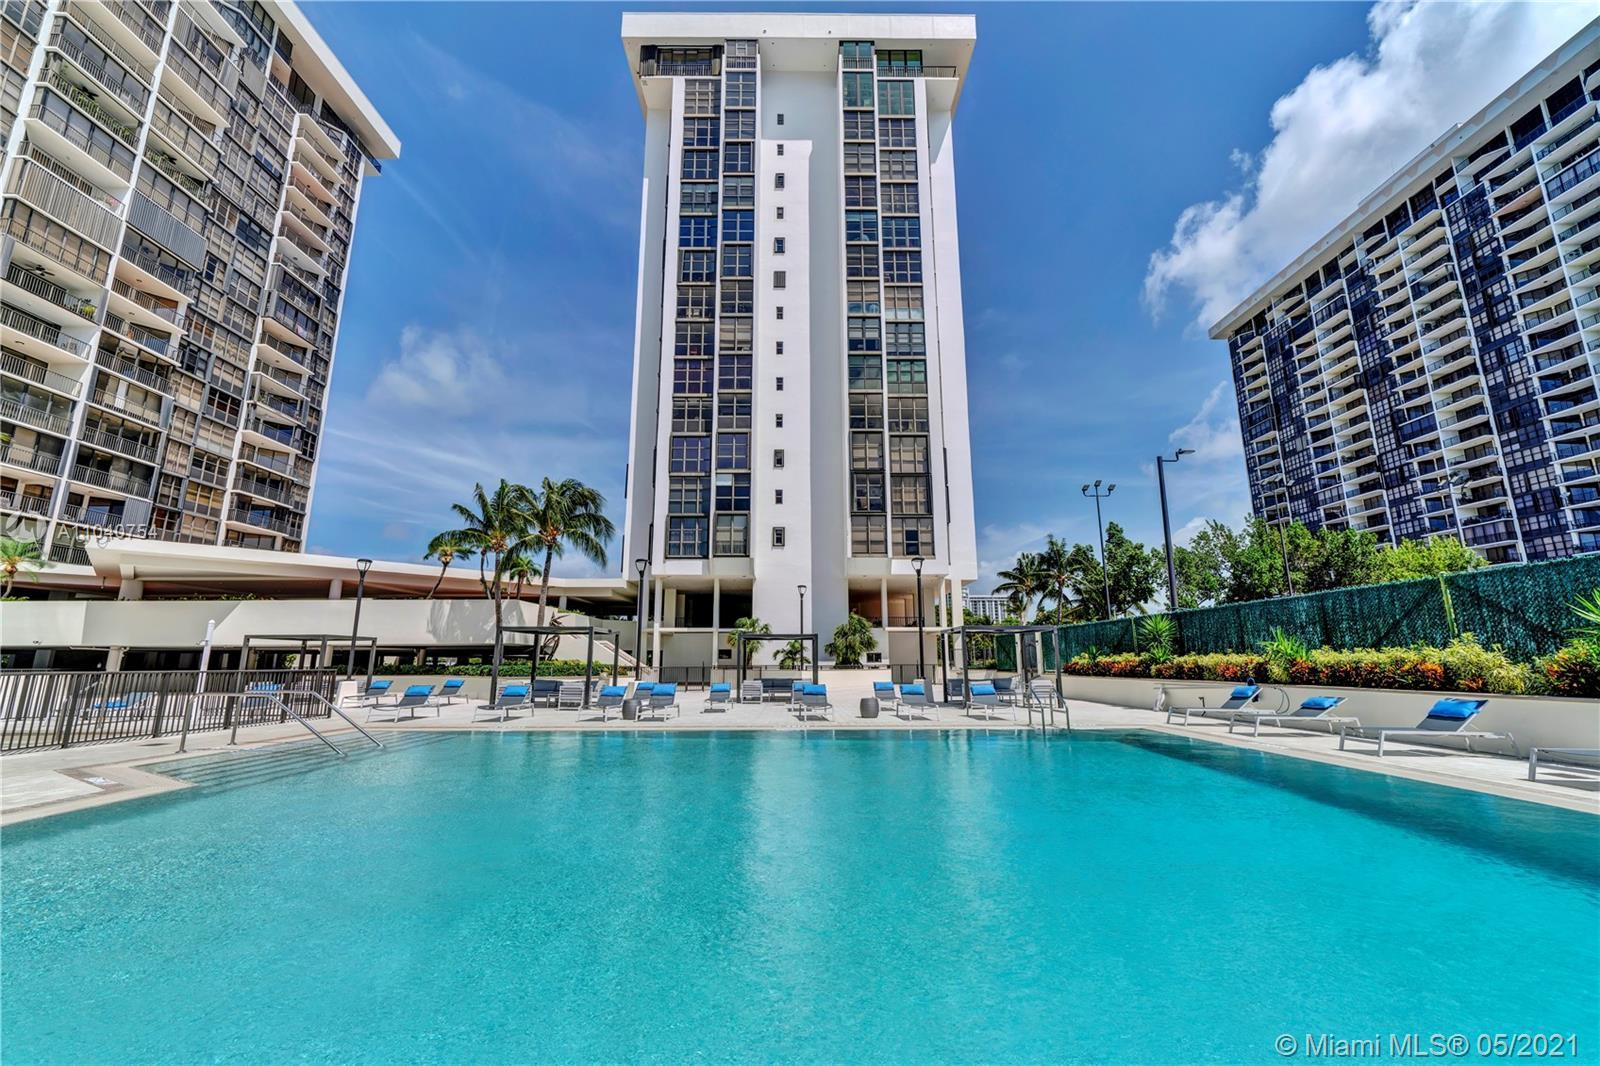 Great Location! 2bed/2baths in the heart of Brickell.Renovated kitchen and baths,contemporary wood c